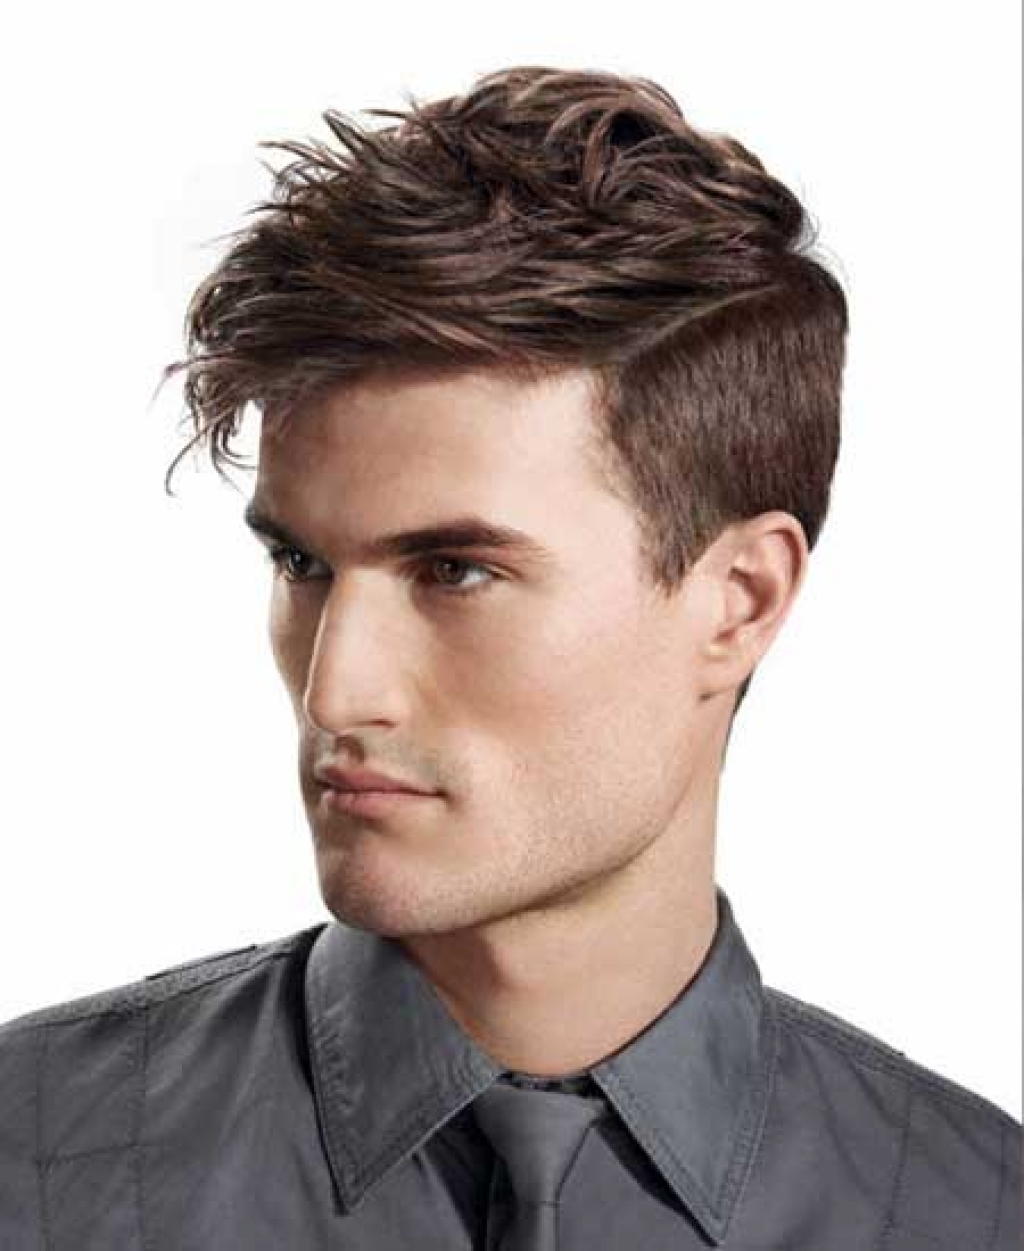 Boys Hairstyles Ideas To Look Super Cool   The Xerxes